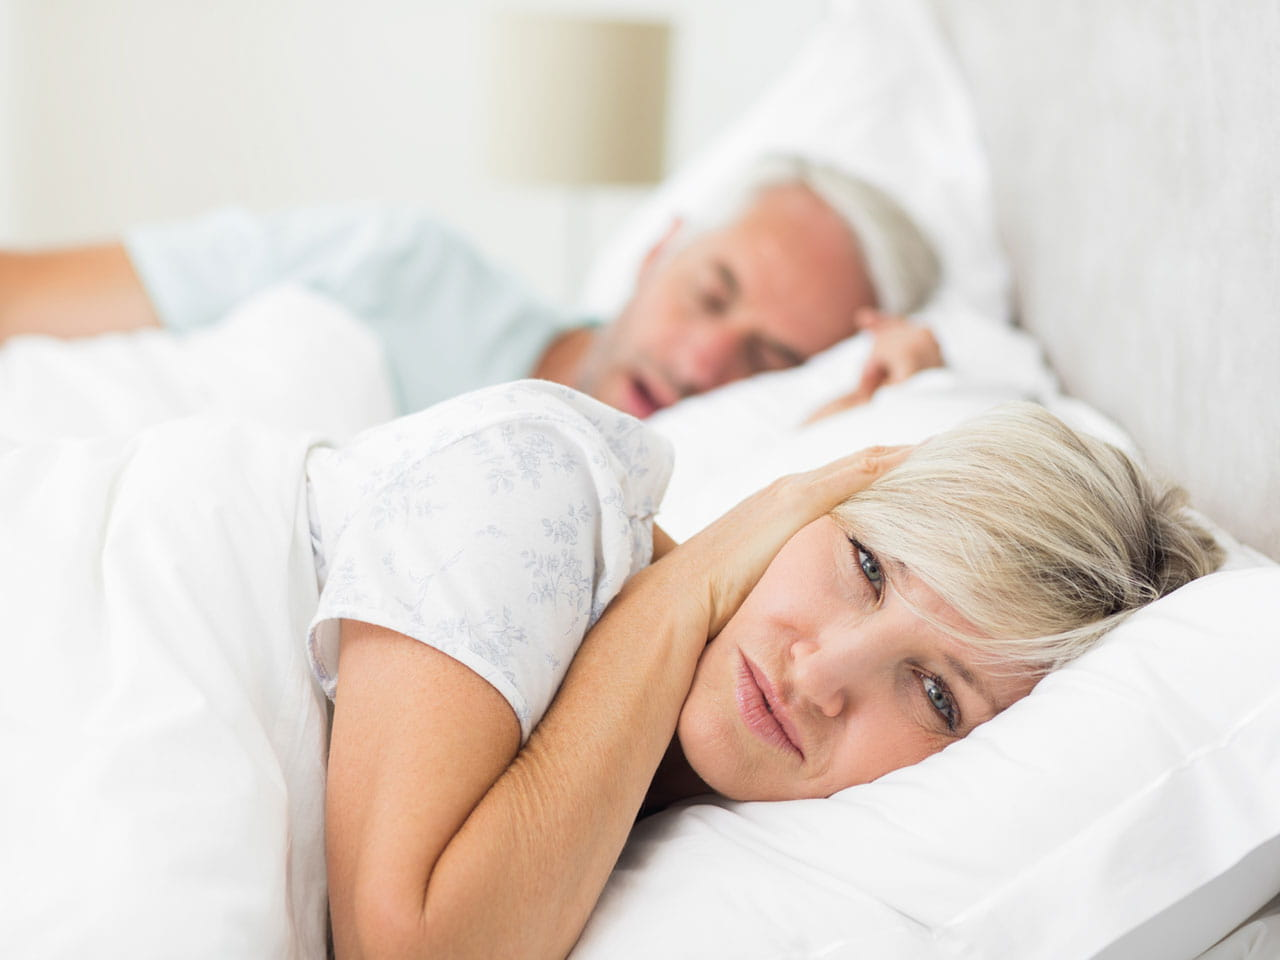 Mature couple in bed with man snoring and woman awake